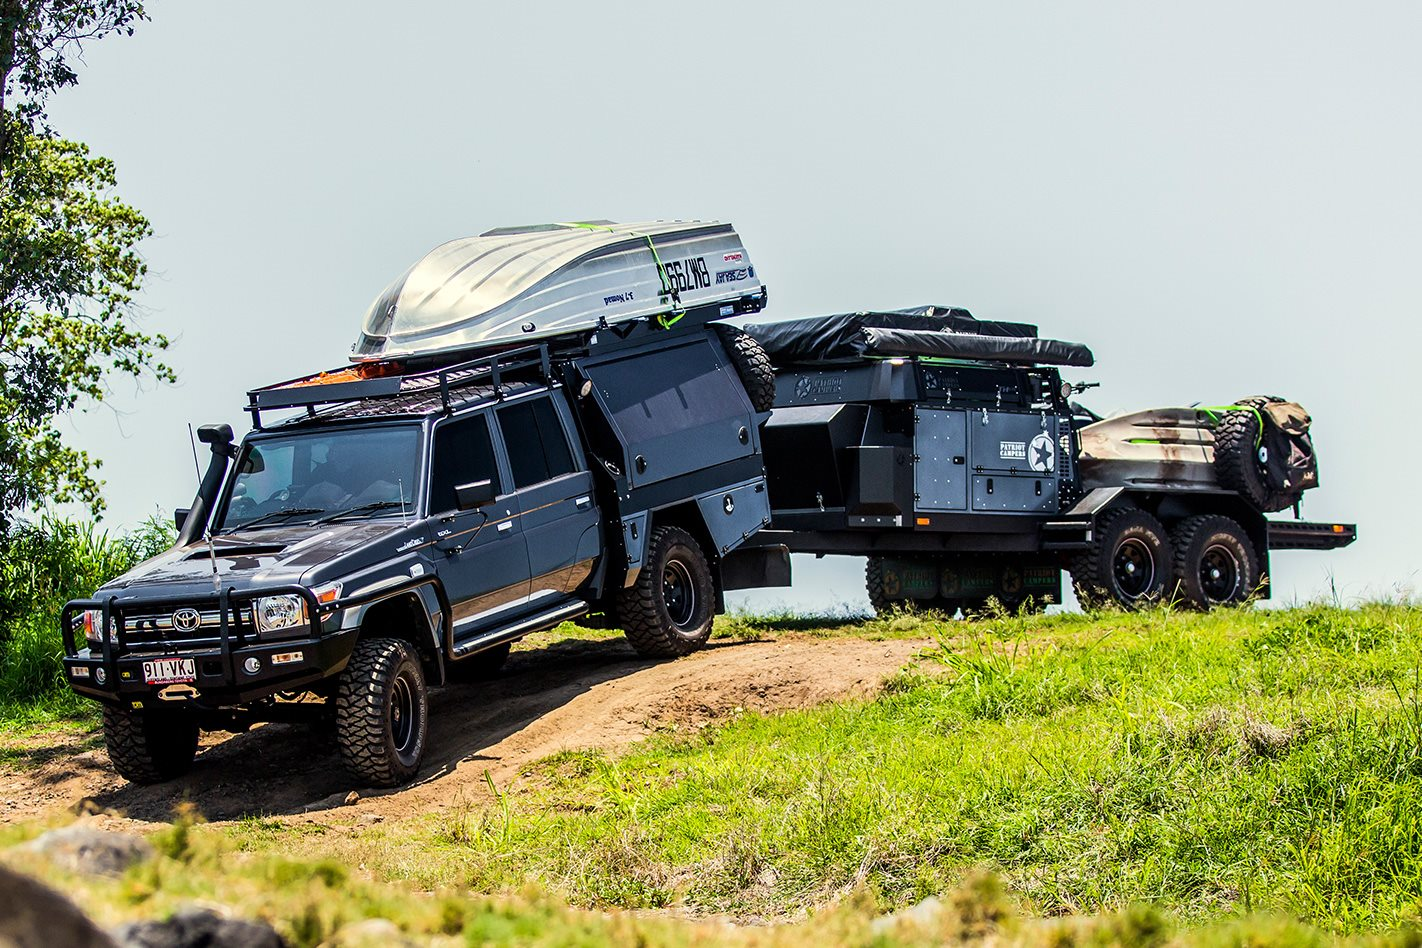 Custom 4x4 | VDJ79 Land Cruiser Goliath | 4X4 Australia